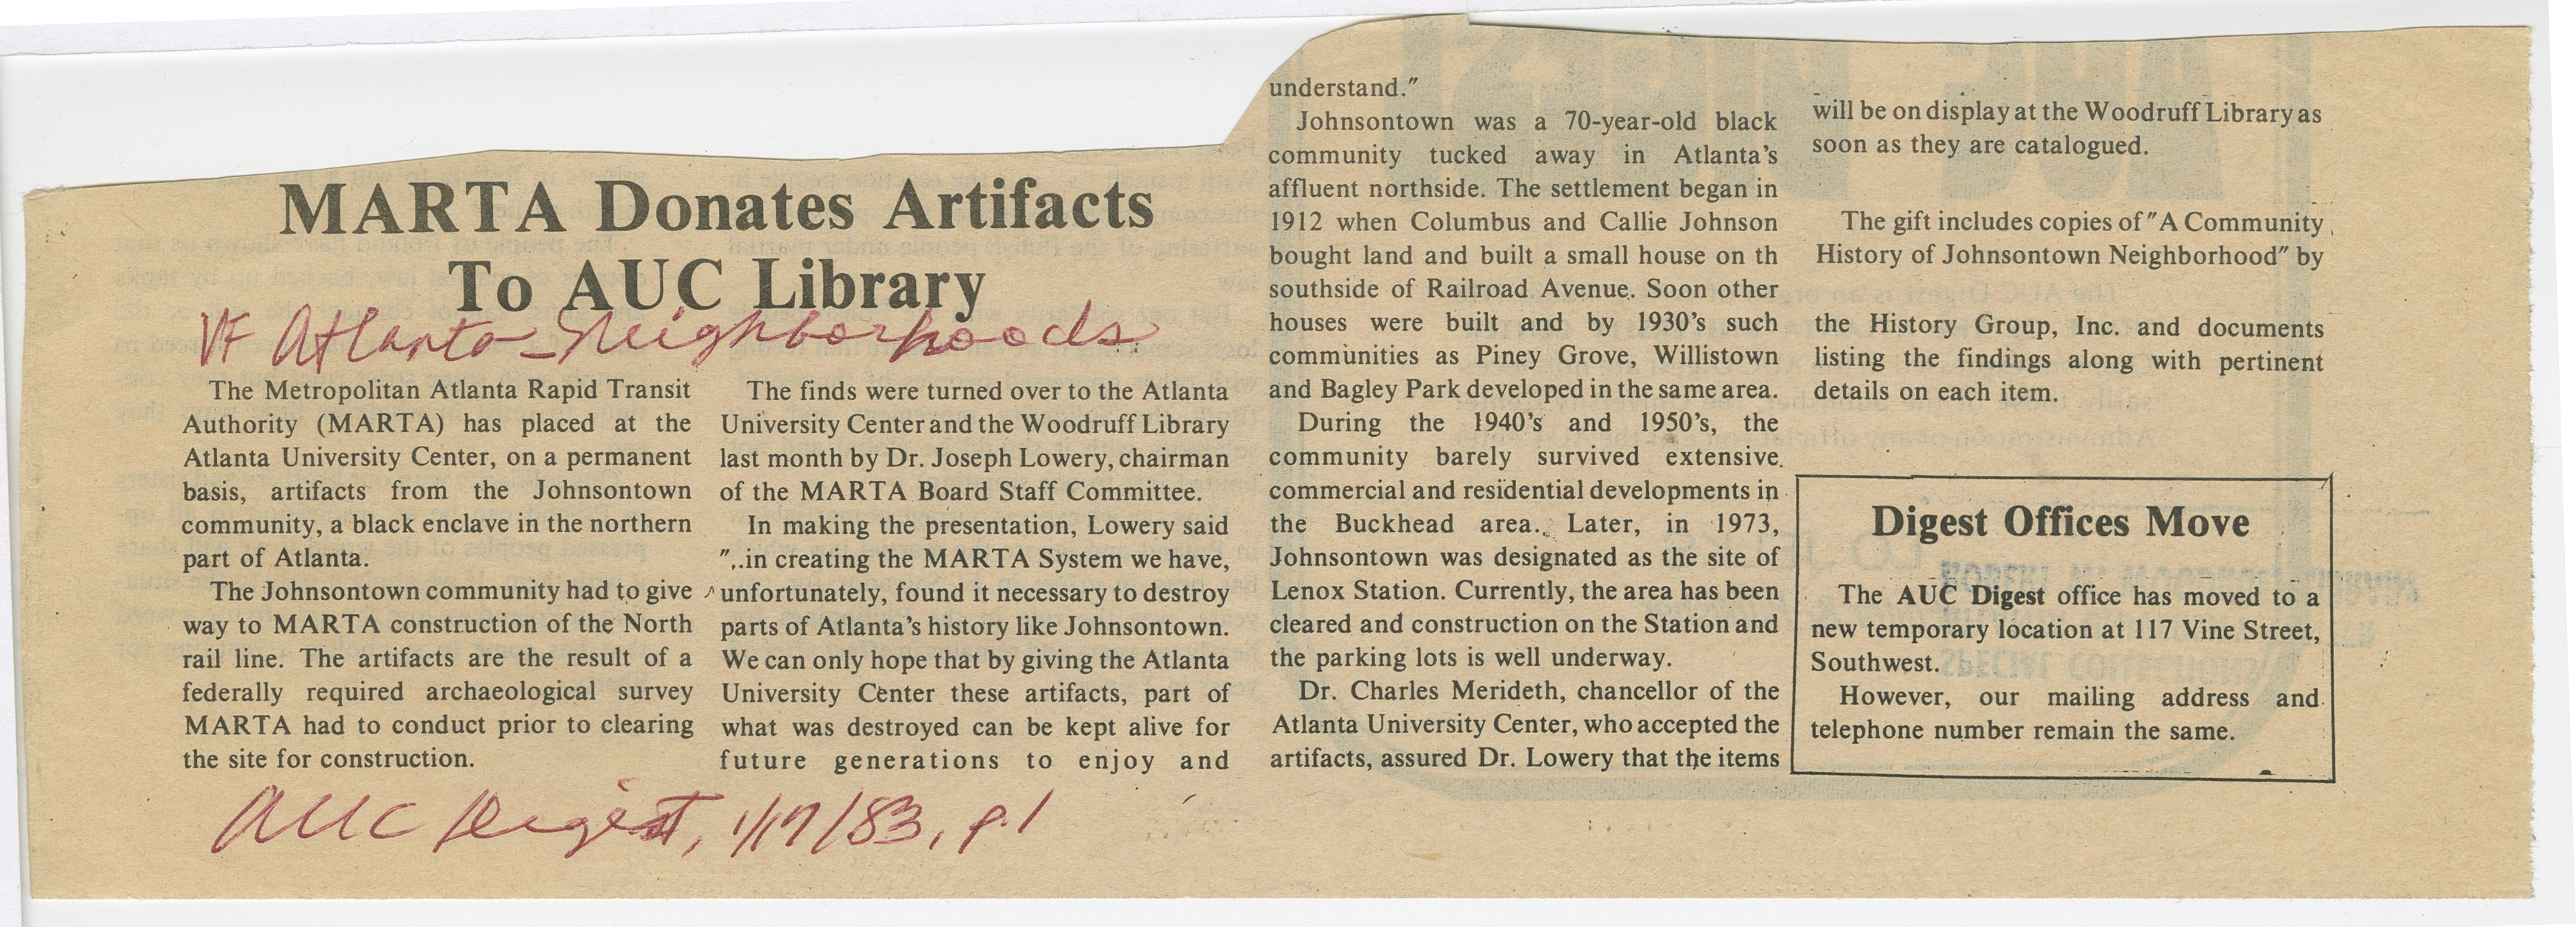 MARTA Donates Artifacts to AUC Library